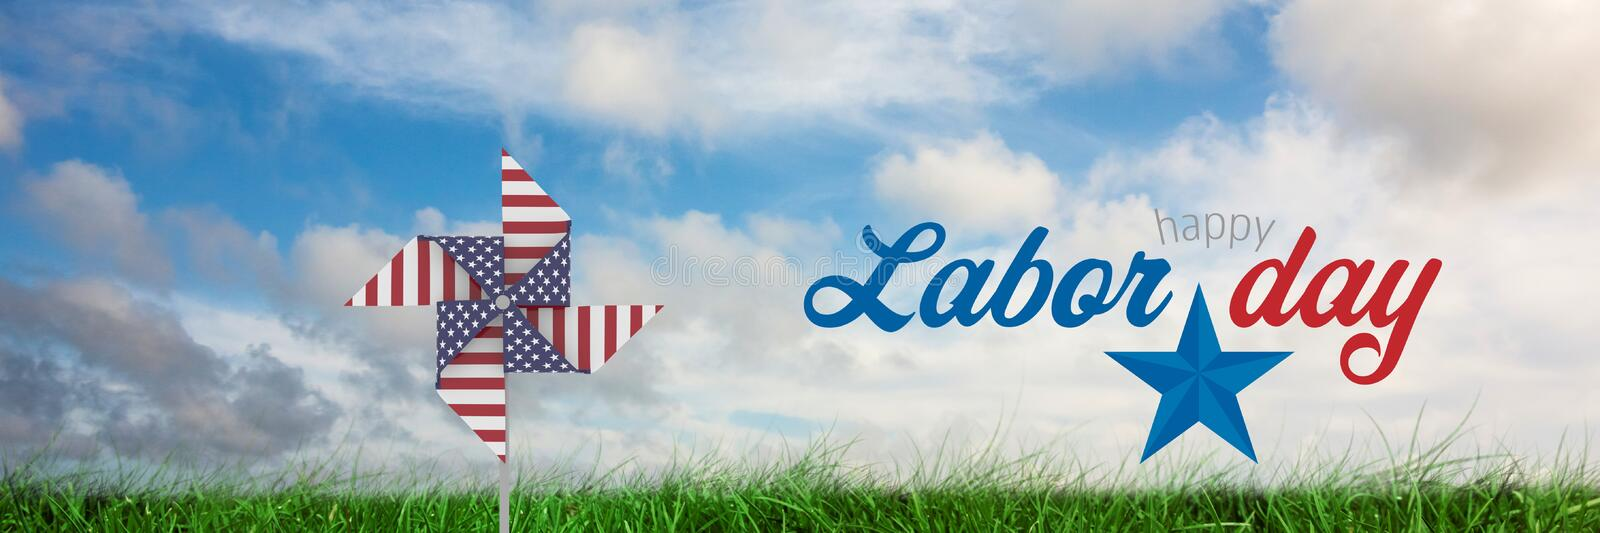 Happy labor day text and USA wind catcher in front of grass and sky royalty free stock photo